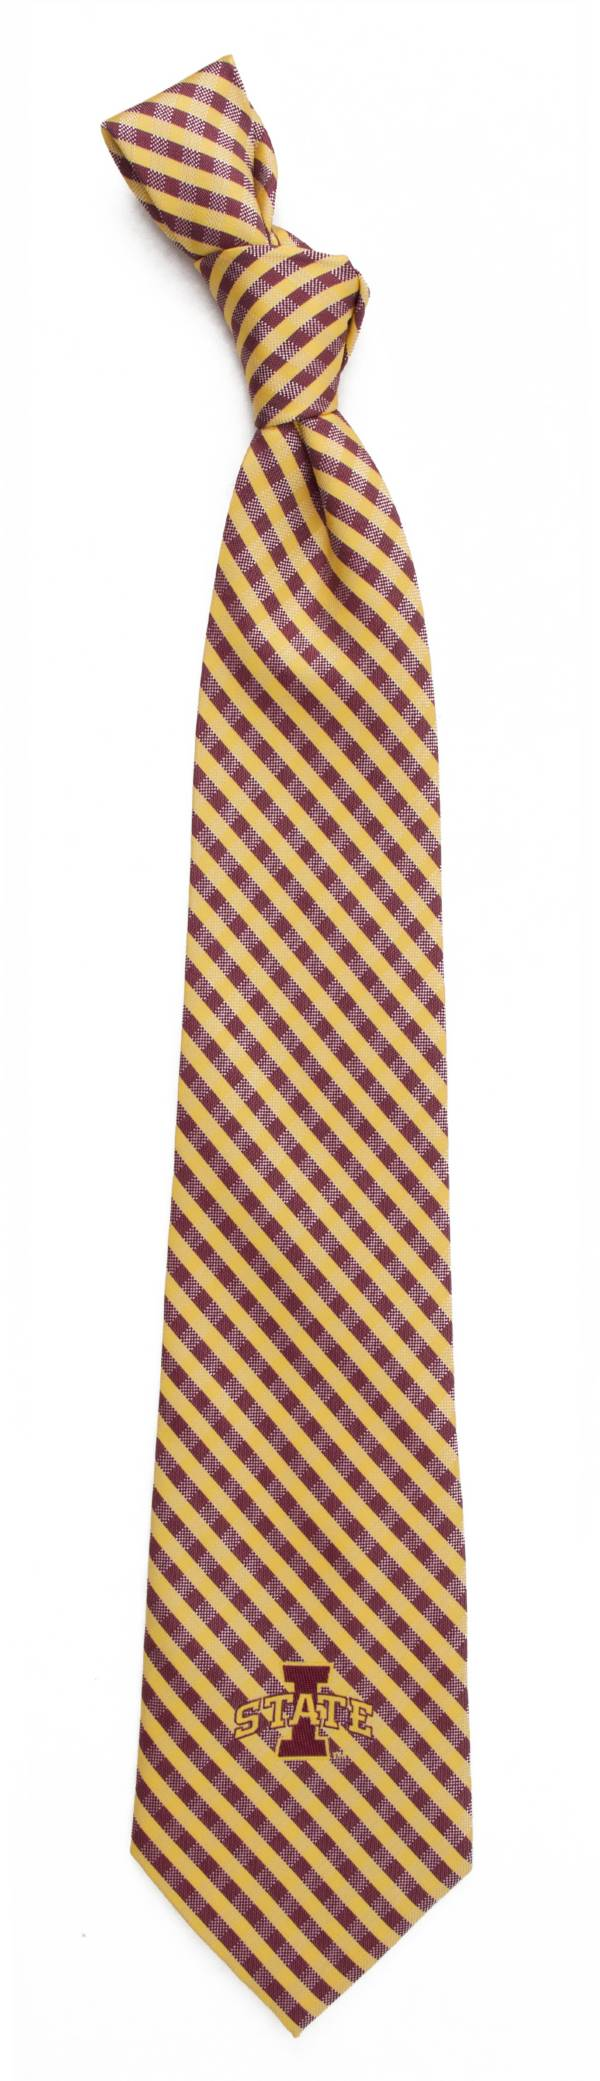 Eagles Wings Iowa State Cyclones Gingham Necktie product image